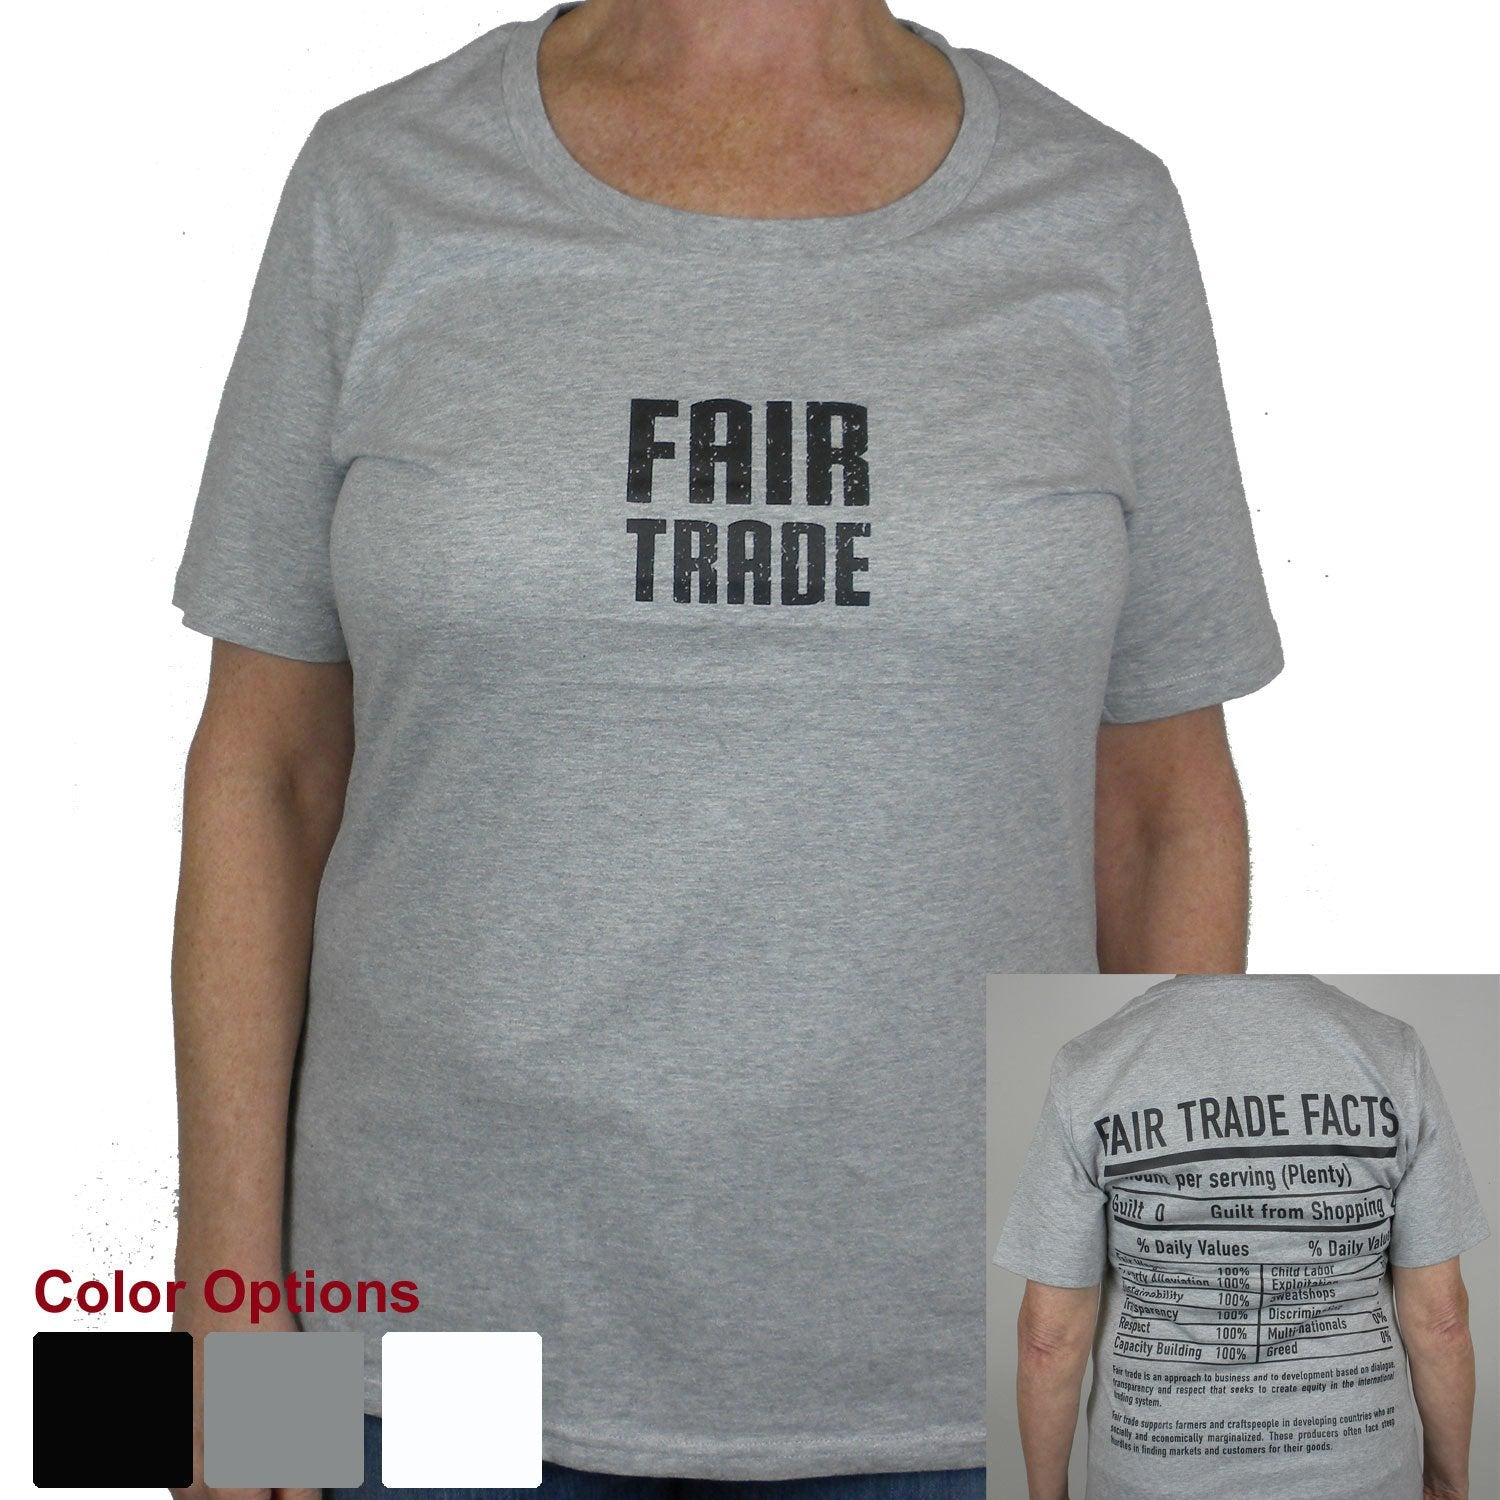 Gray Fitted Tee Shirt Small FT Front - FT Facts on Back - Large